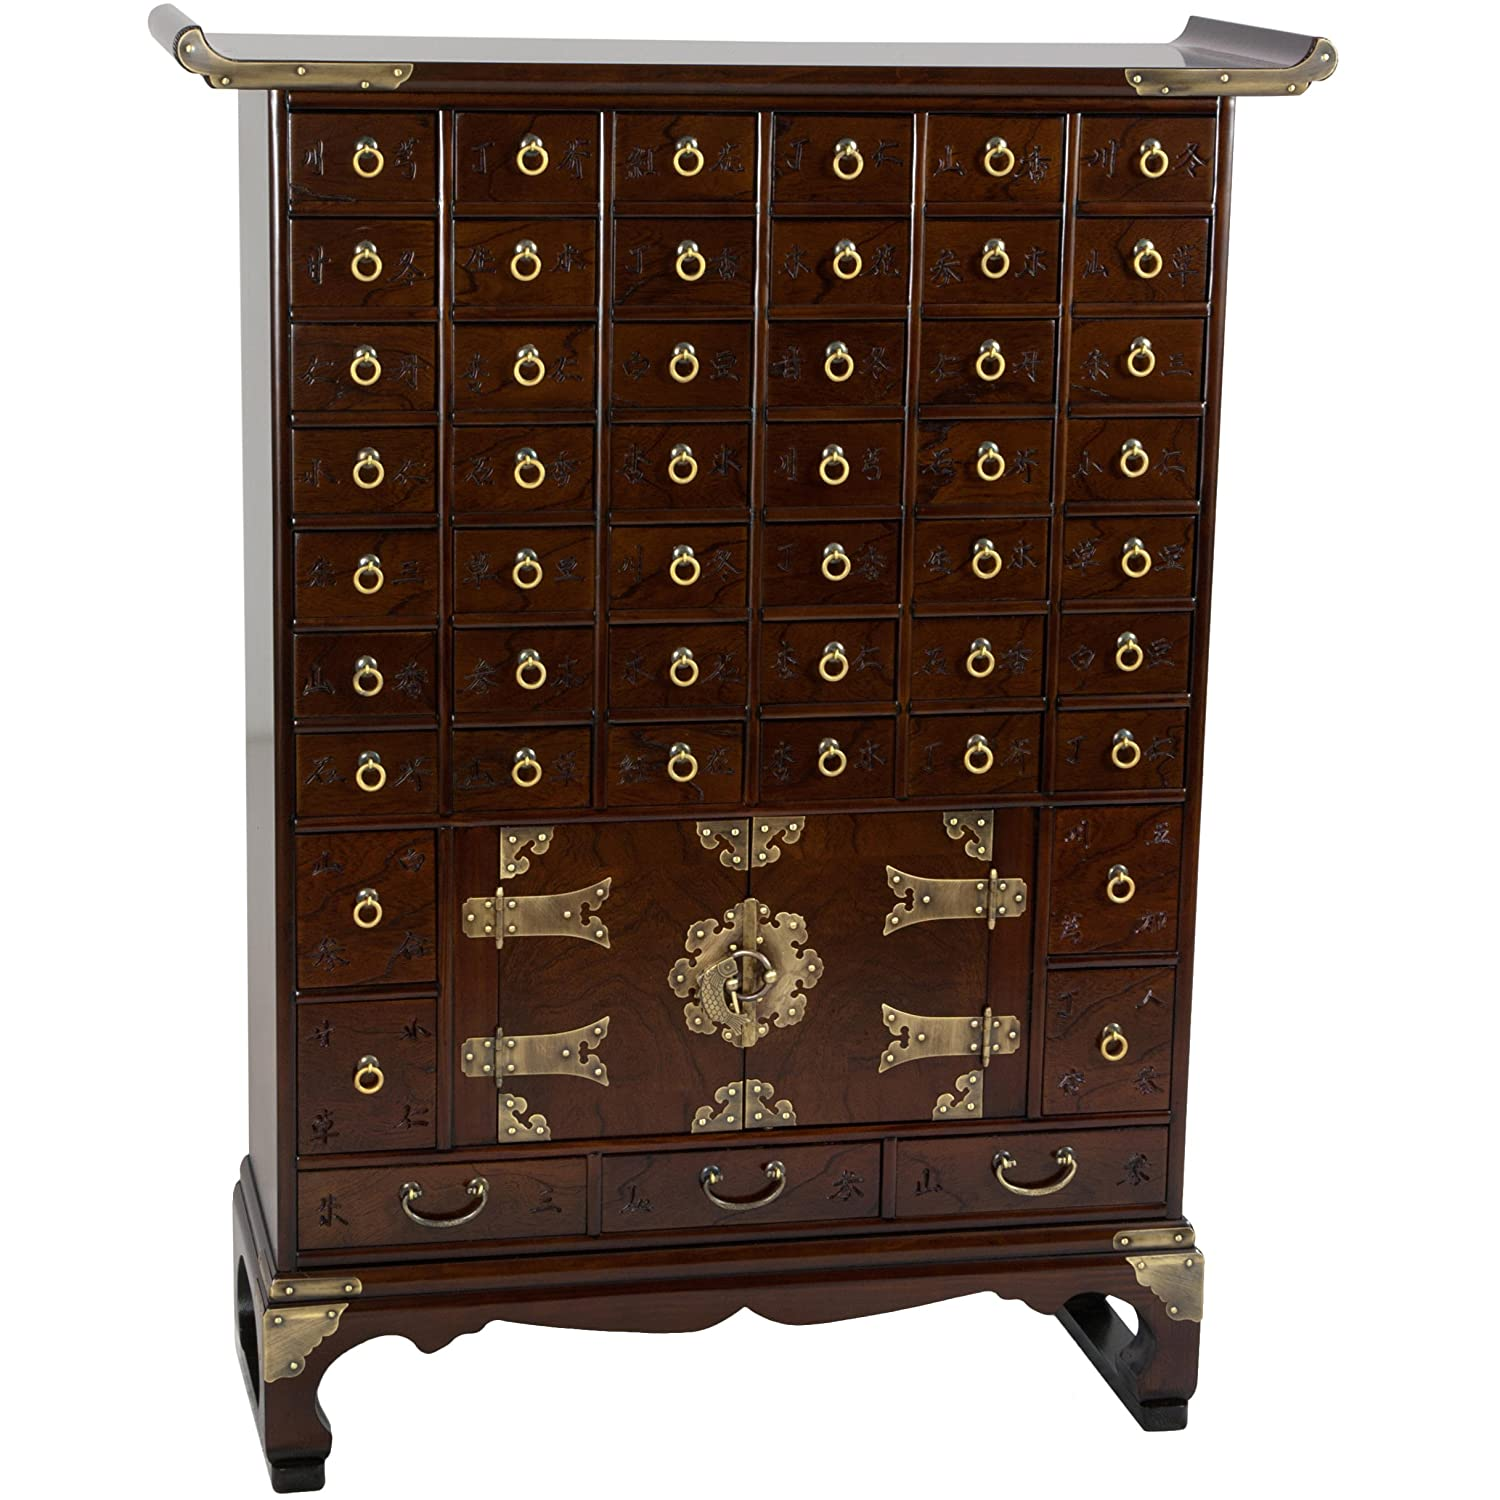 Captivating Amazon.com: Oriental Furniture Korean Antique Style 49 Drawer Apothecary  Chest: Kitchen U0026 Dining